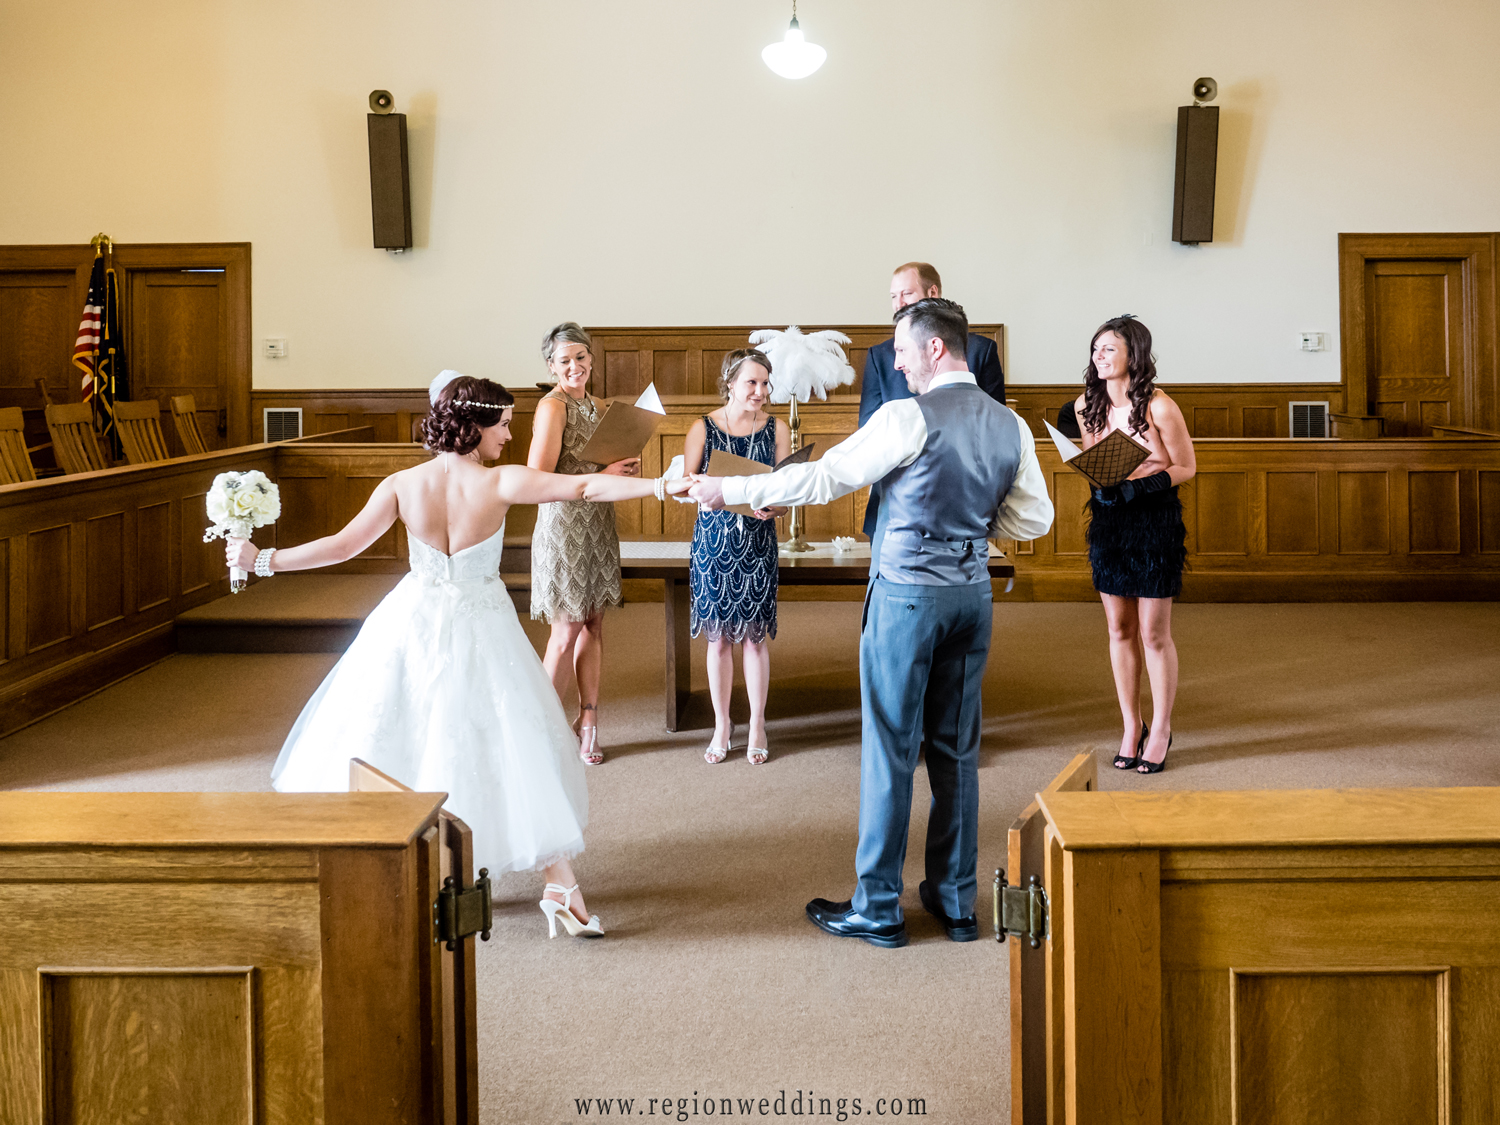 The bride and groom dance at their Crown Point wedding ceremony inside the 3rd floor courtroom.